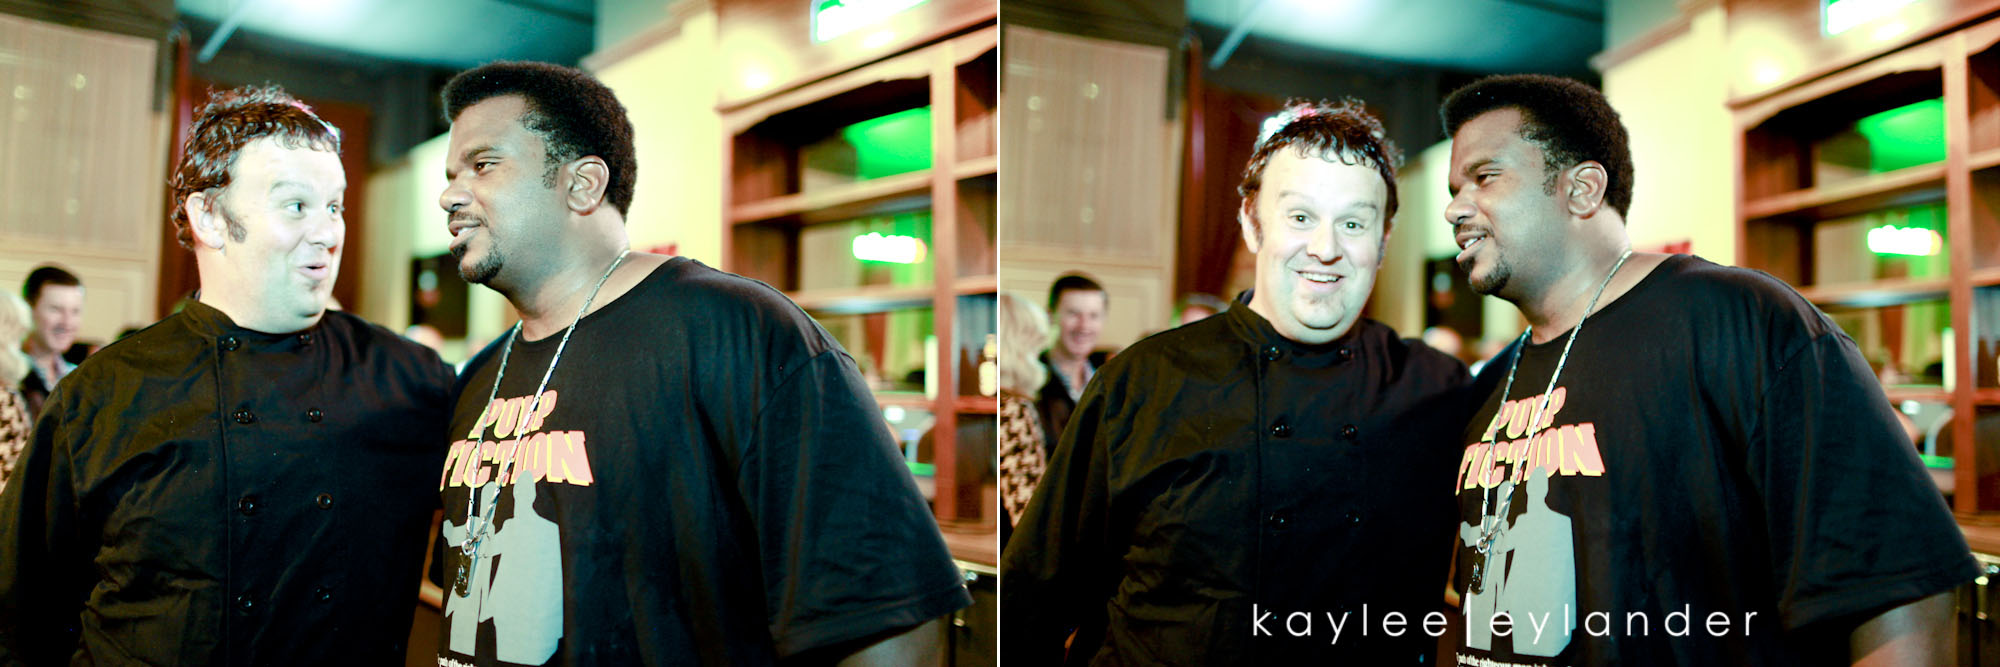 Rainn Wilson After Party0024 Rainn Wilson & Craig Robinson....Benefit for Mona Foundation | Seattle Event Photographers